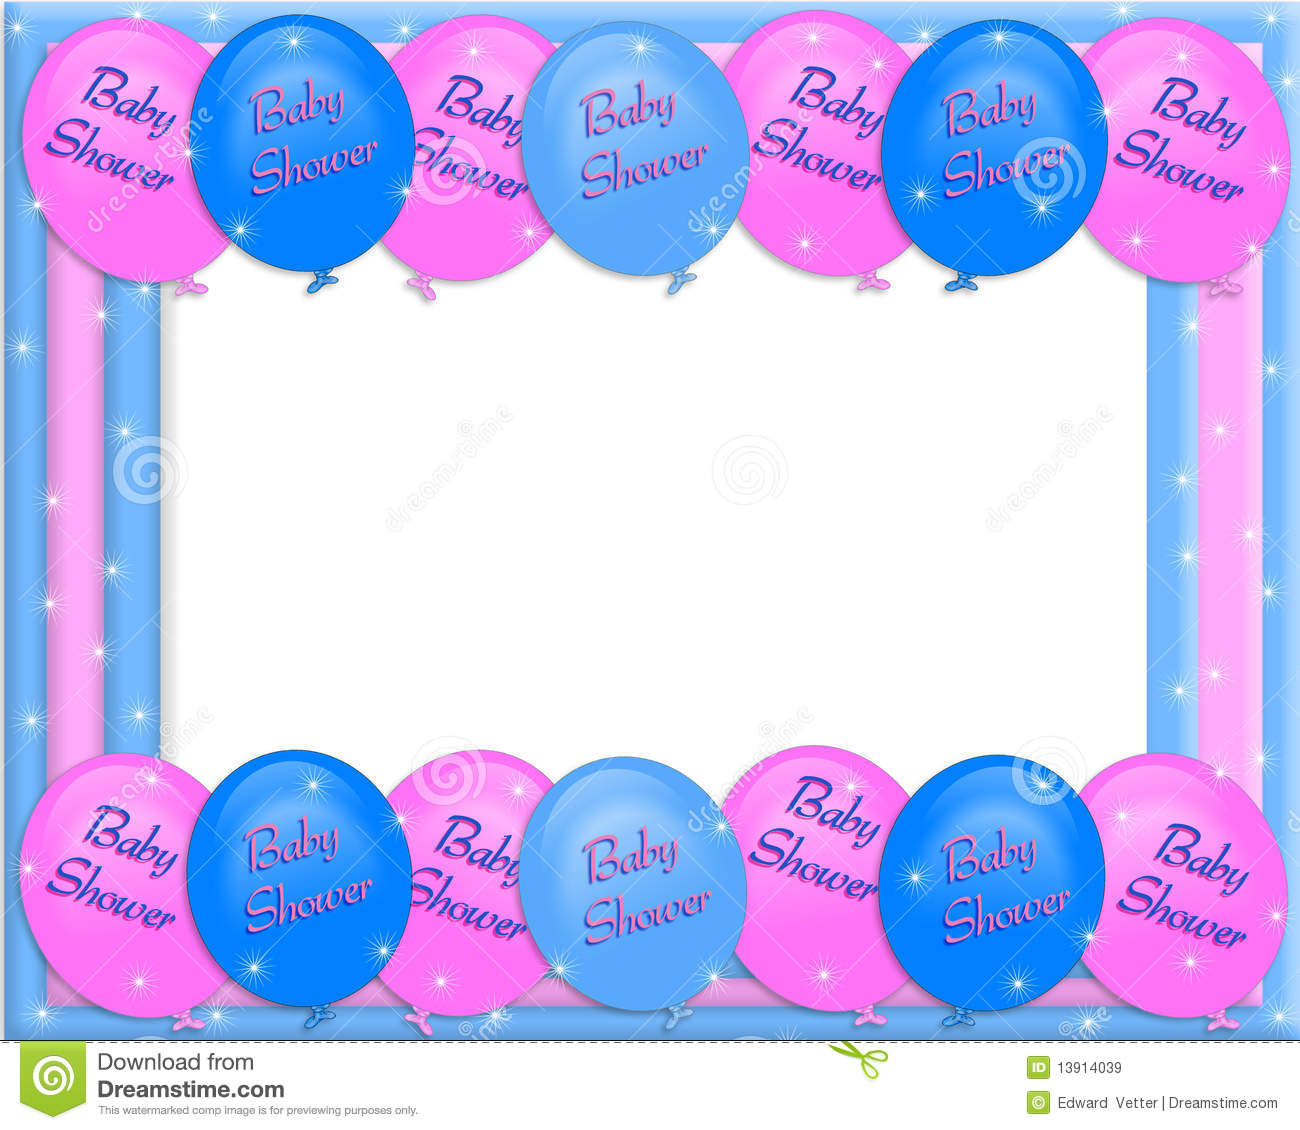 Baby Shower Invitation Border Royalty Free Stock Image.